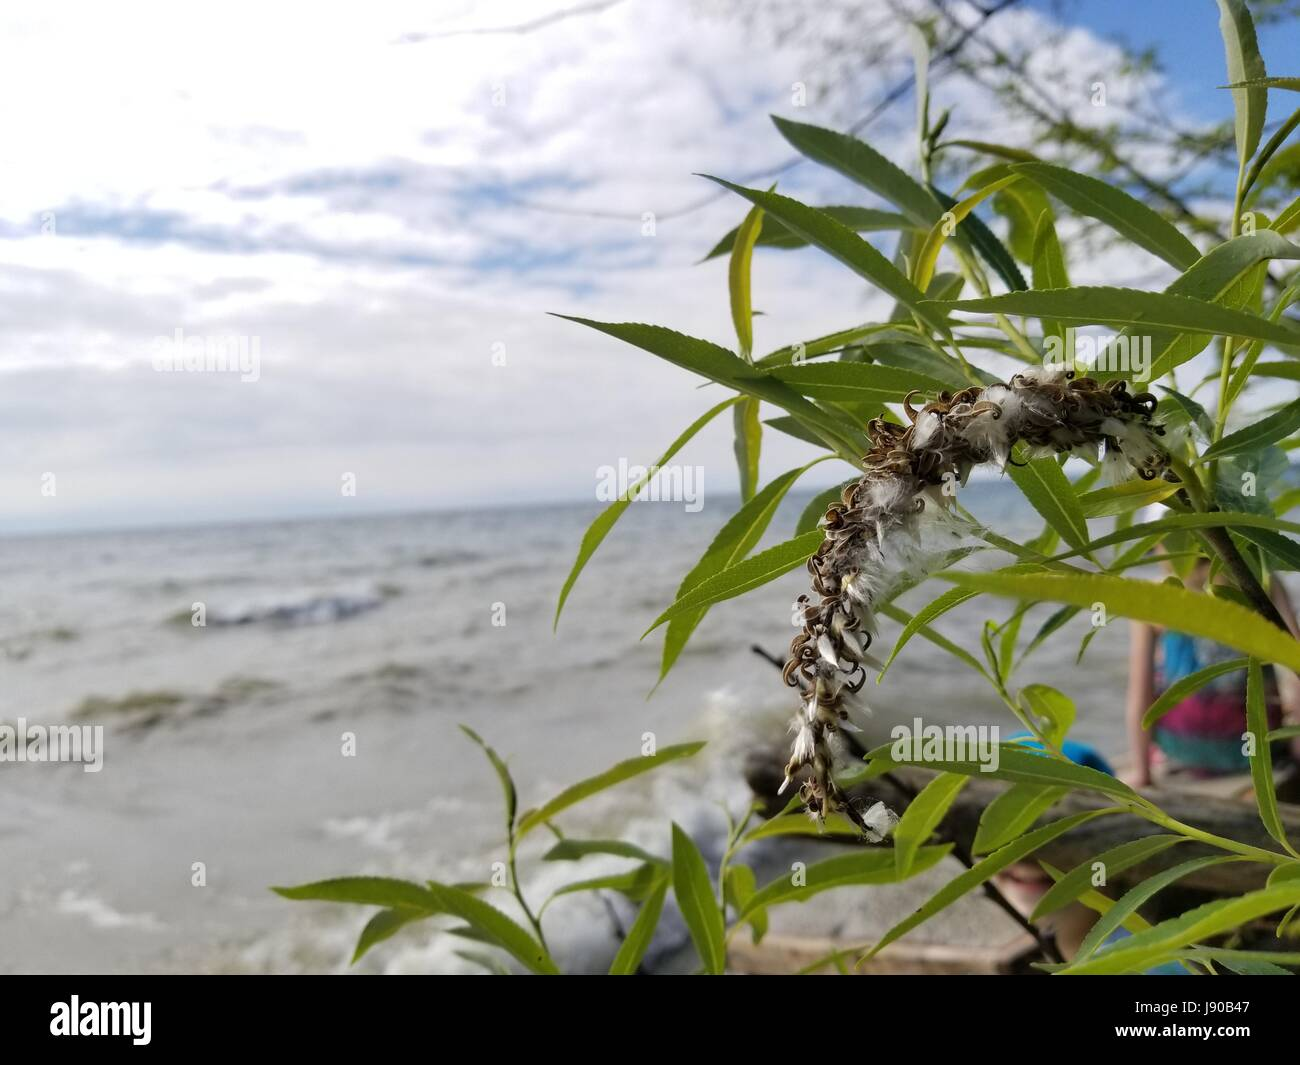 Plant by Lake Michigan on a Partly Cloudy Day - Stock Image